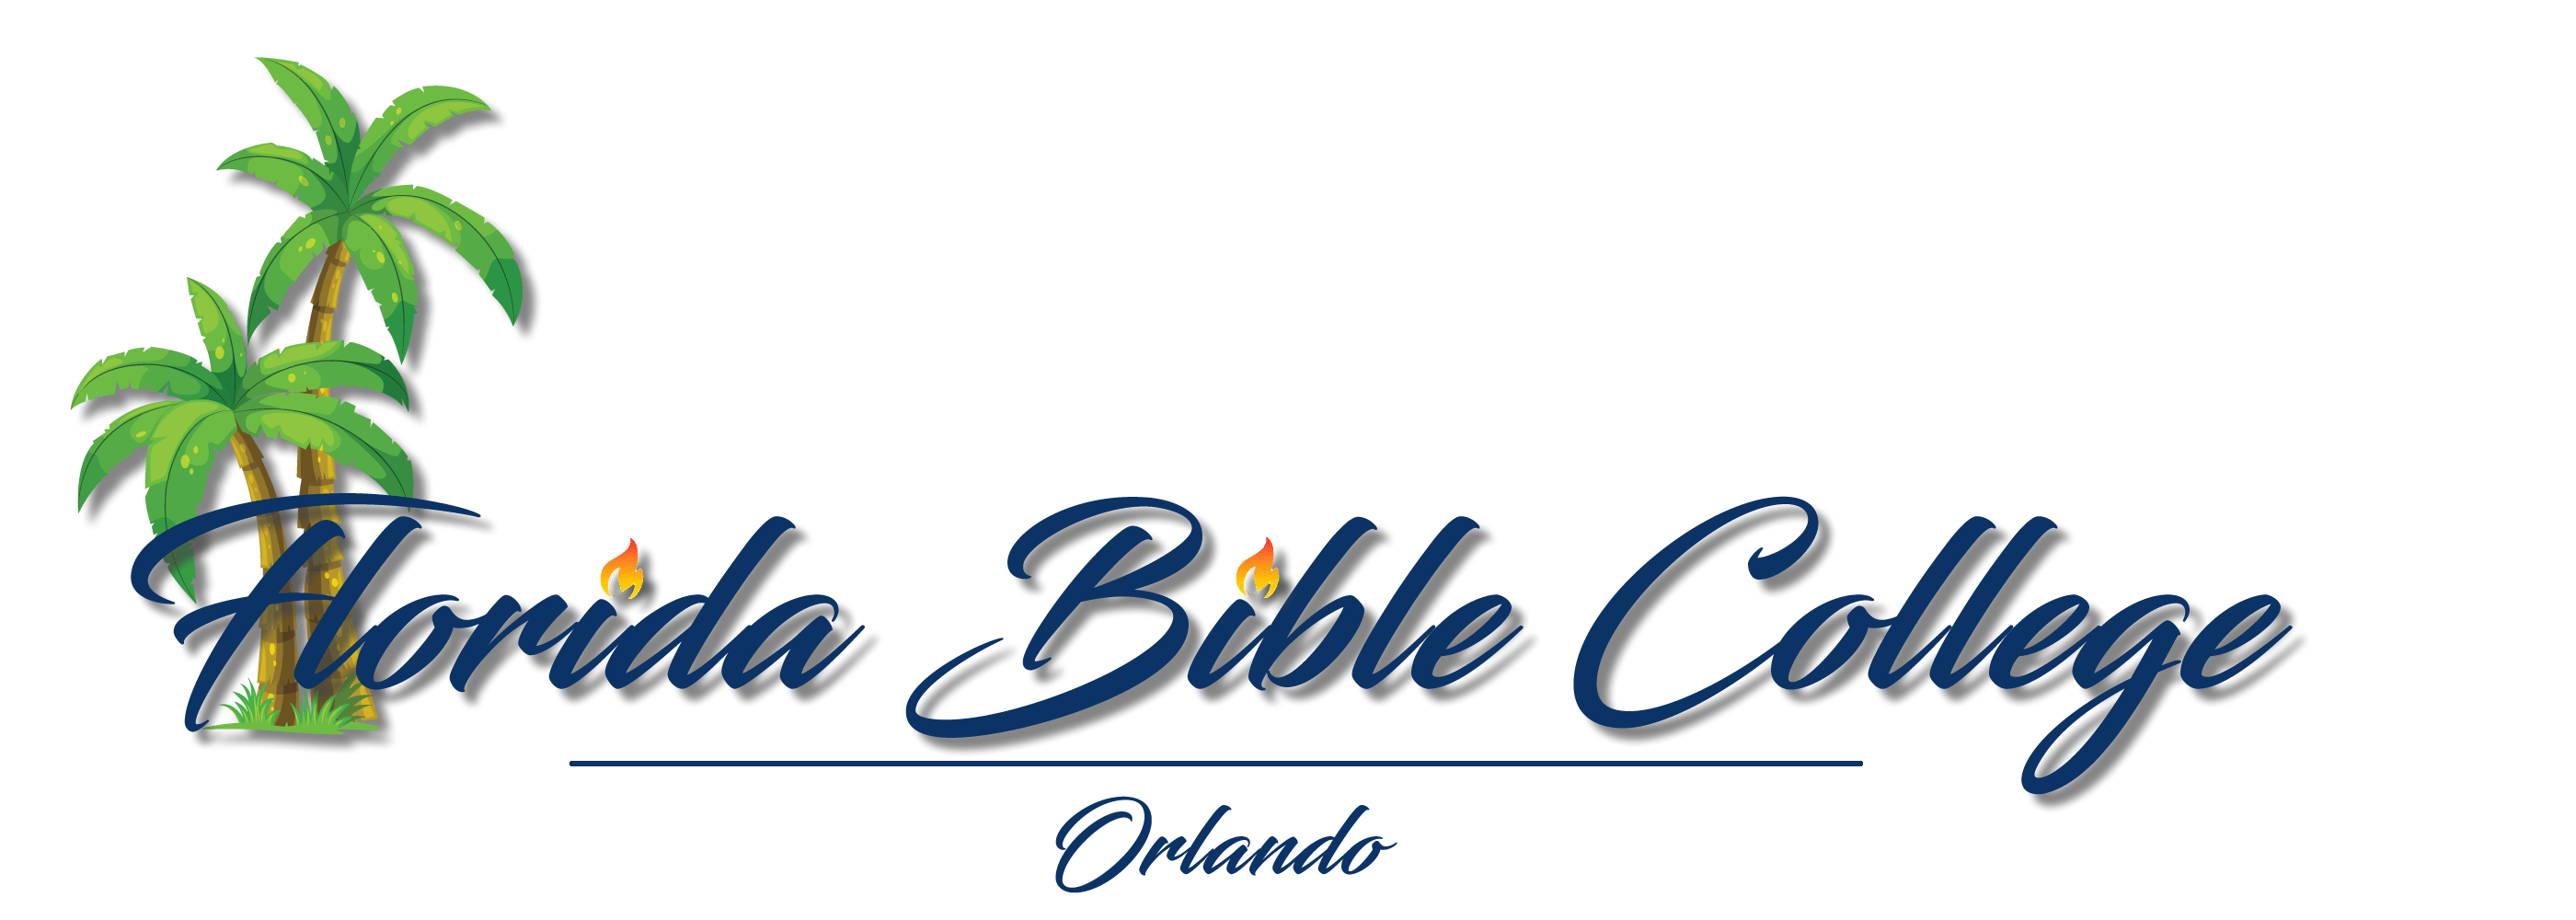 Florida Bible College Online Campus